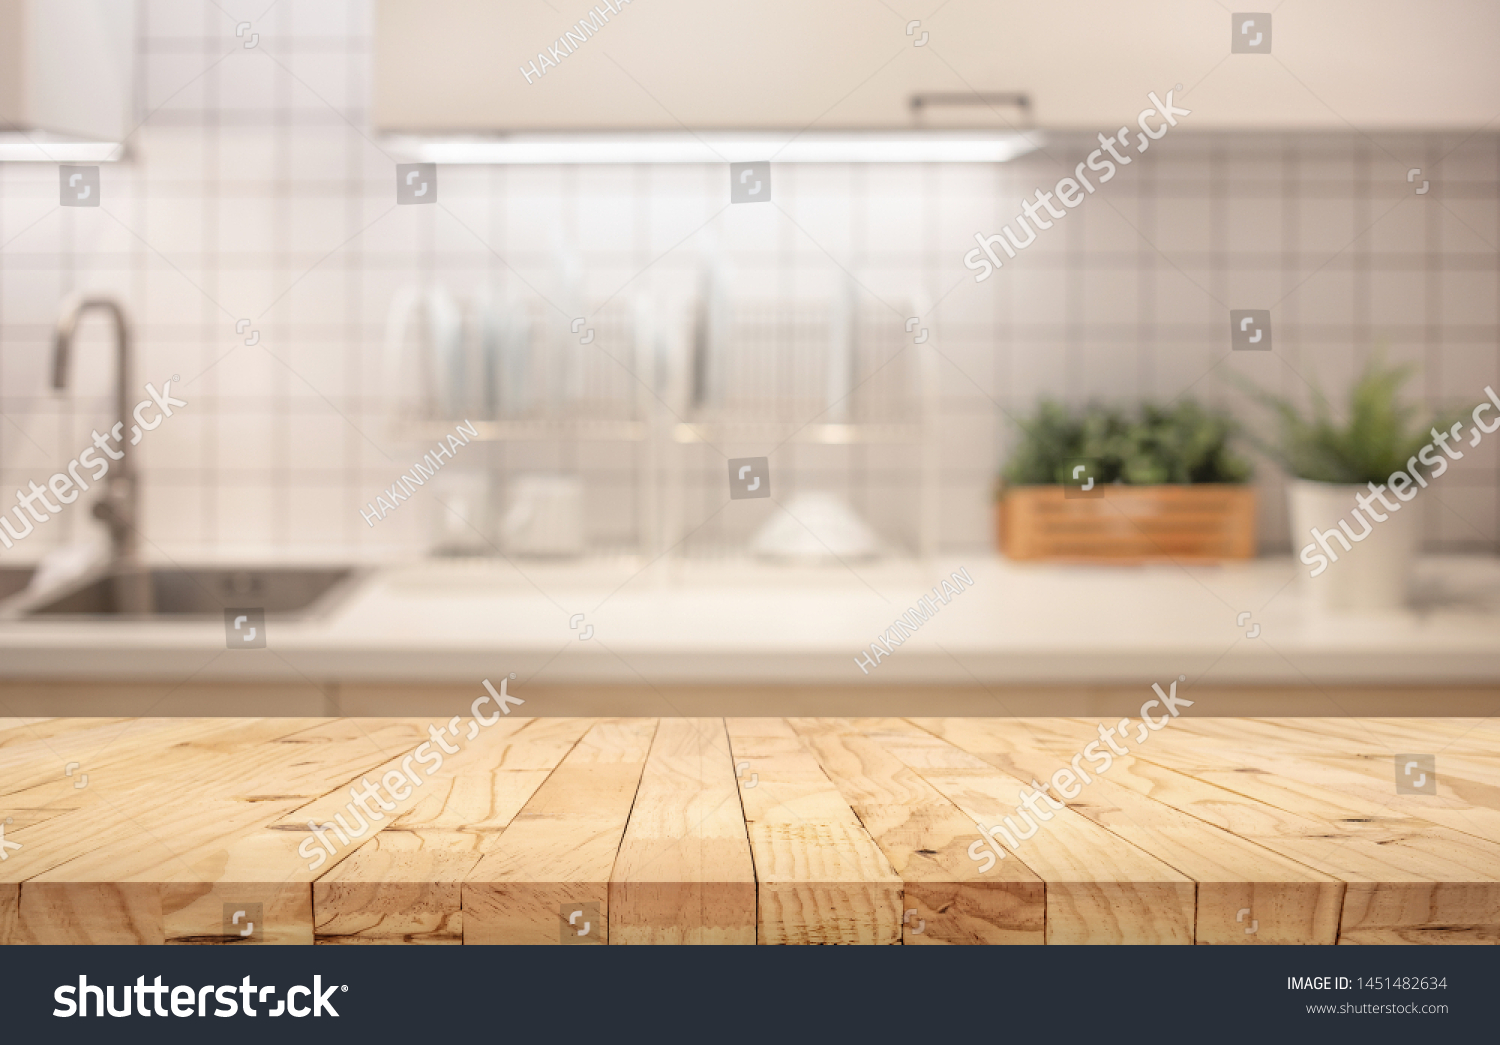 Wood table top on blur kitchen counter (room)background.For montage product display or design key visual layout. #1451482634